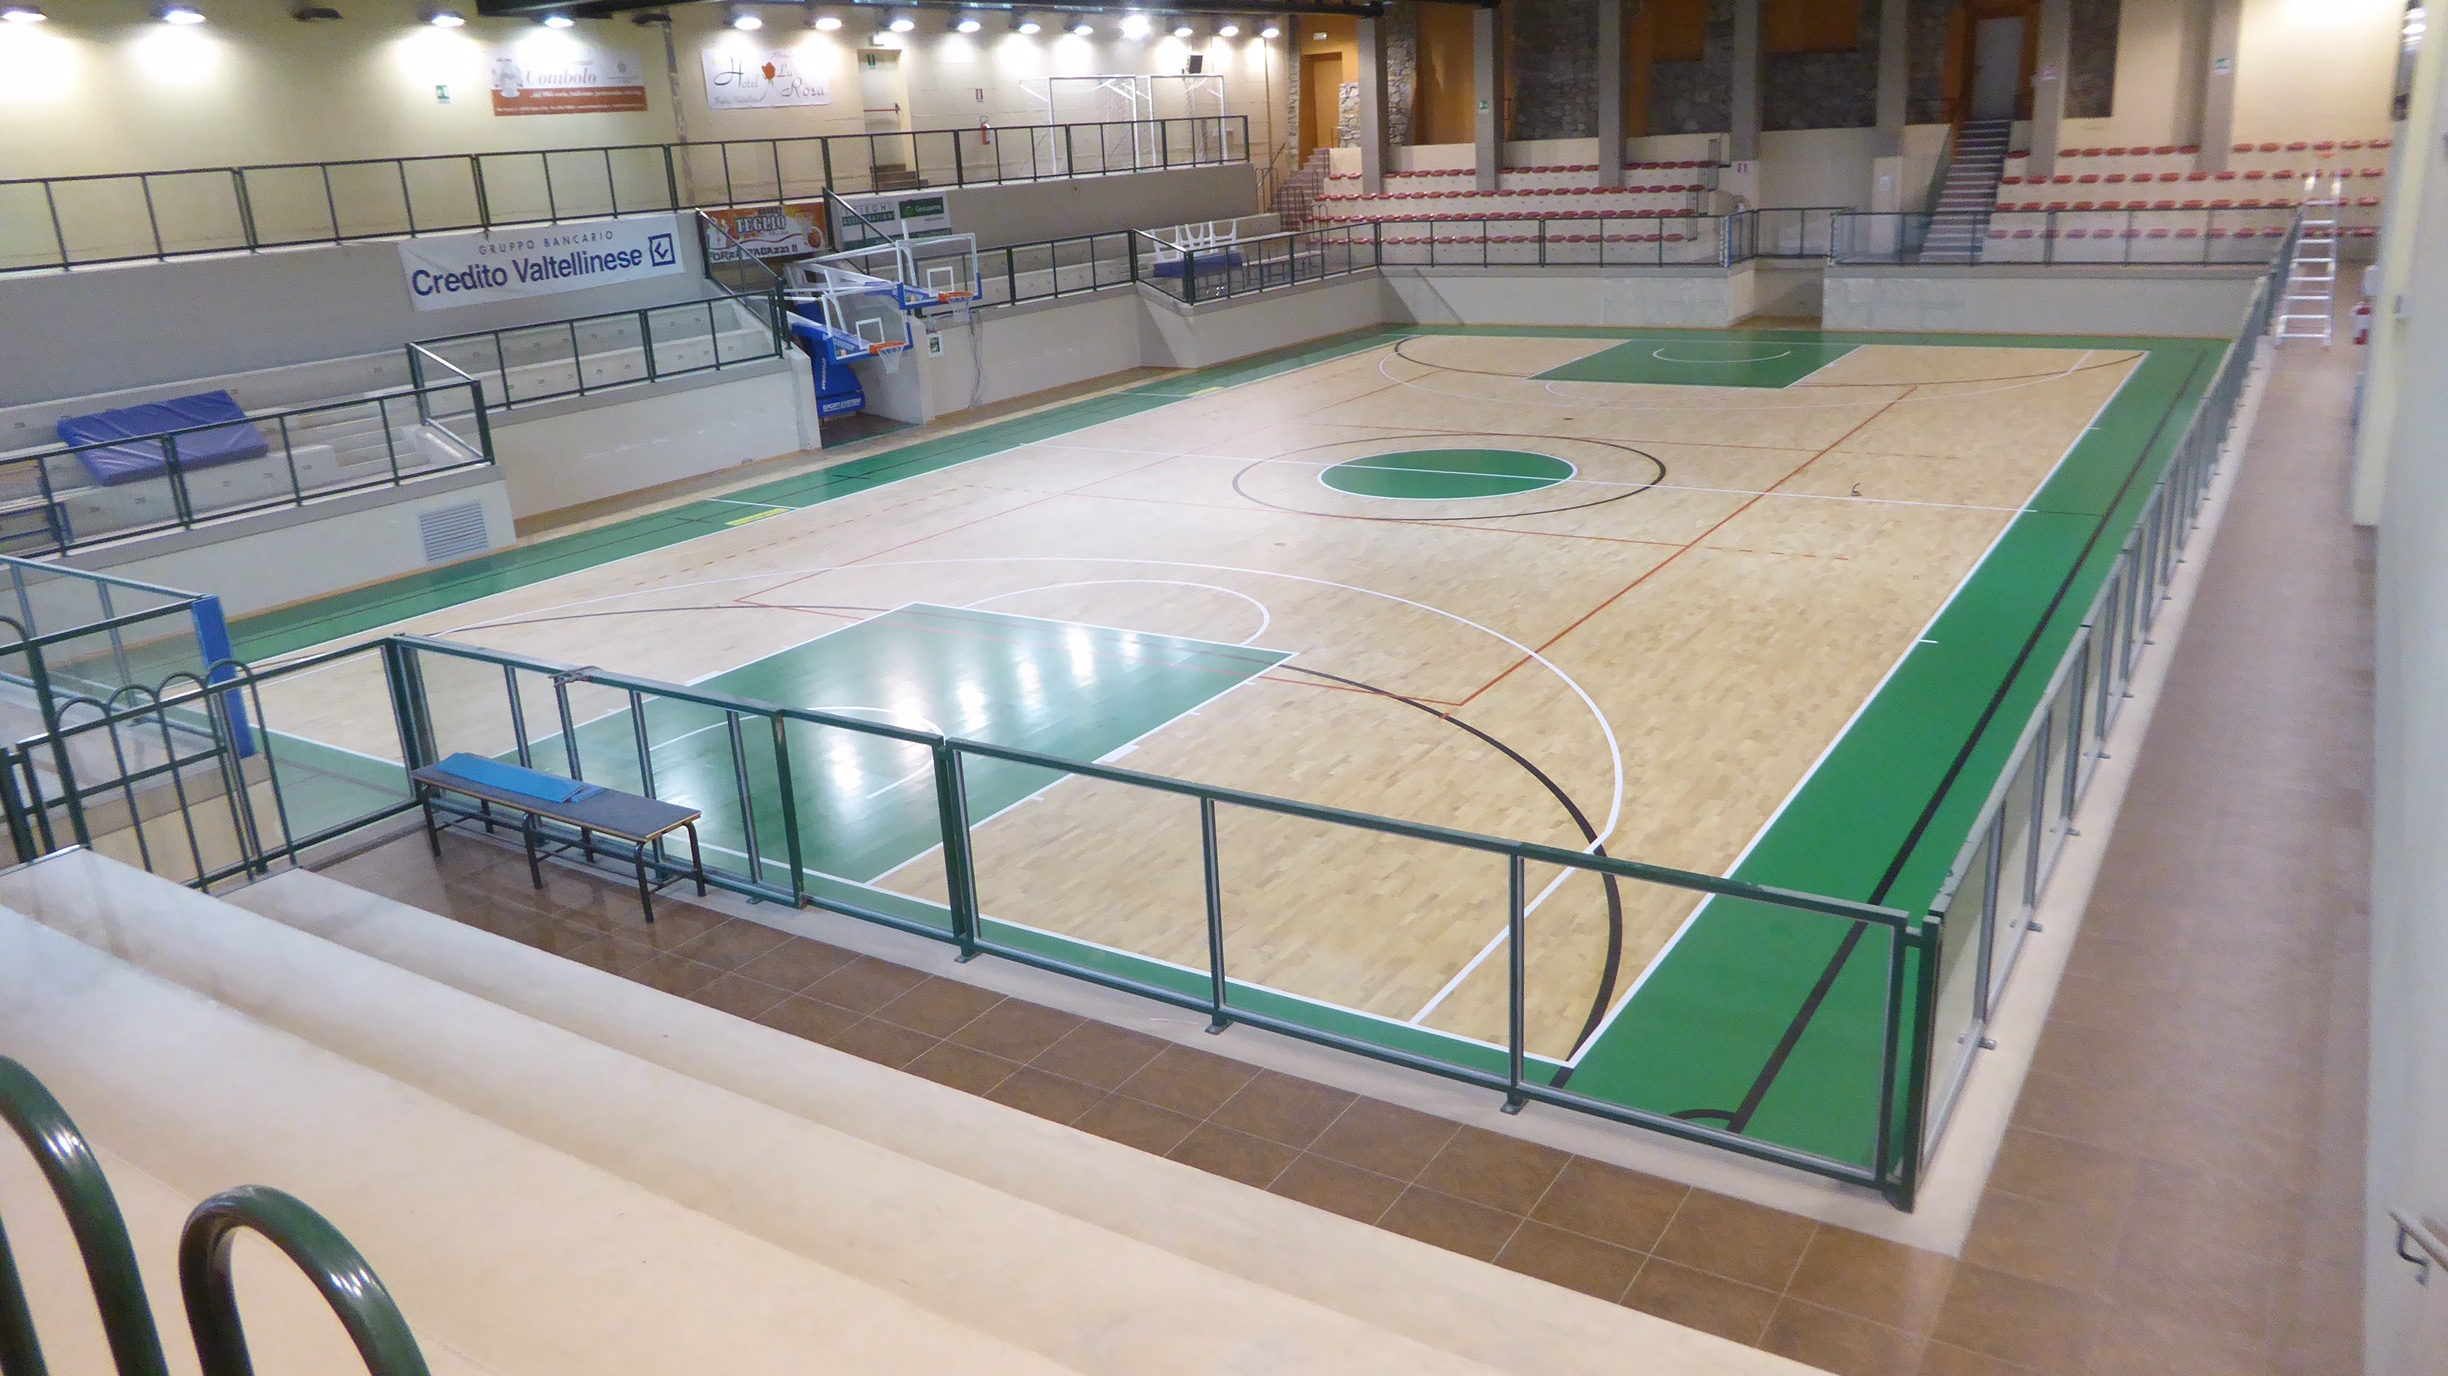 The Dalla Riva parquet is ready to host the preparation of a professional team